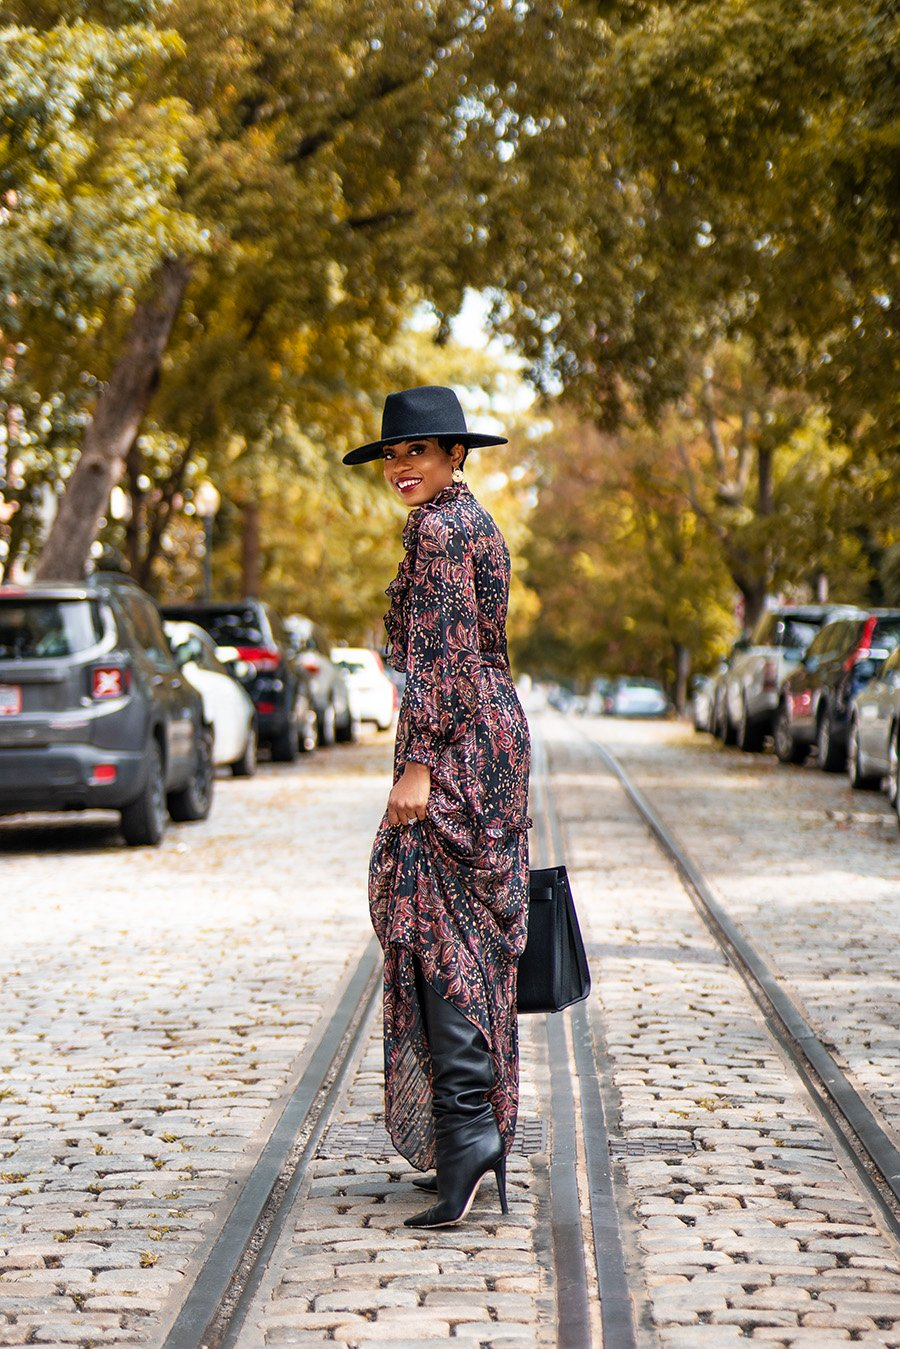 stella-adewunmi-of-jadore-fashion-blog-shares-how-to-style-fall-dress-knee-high-boots